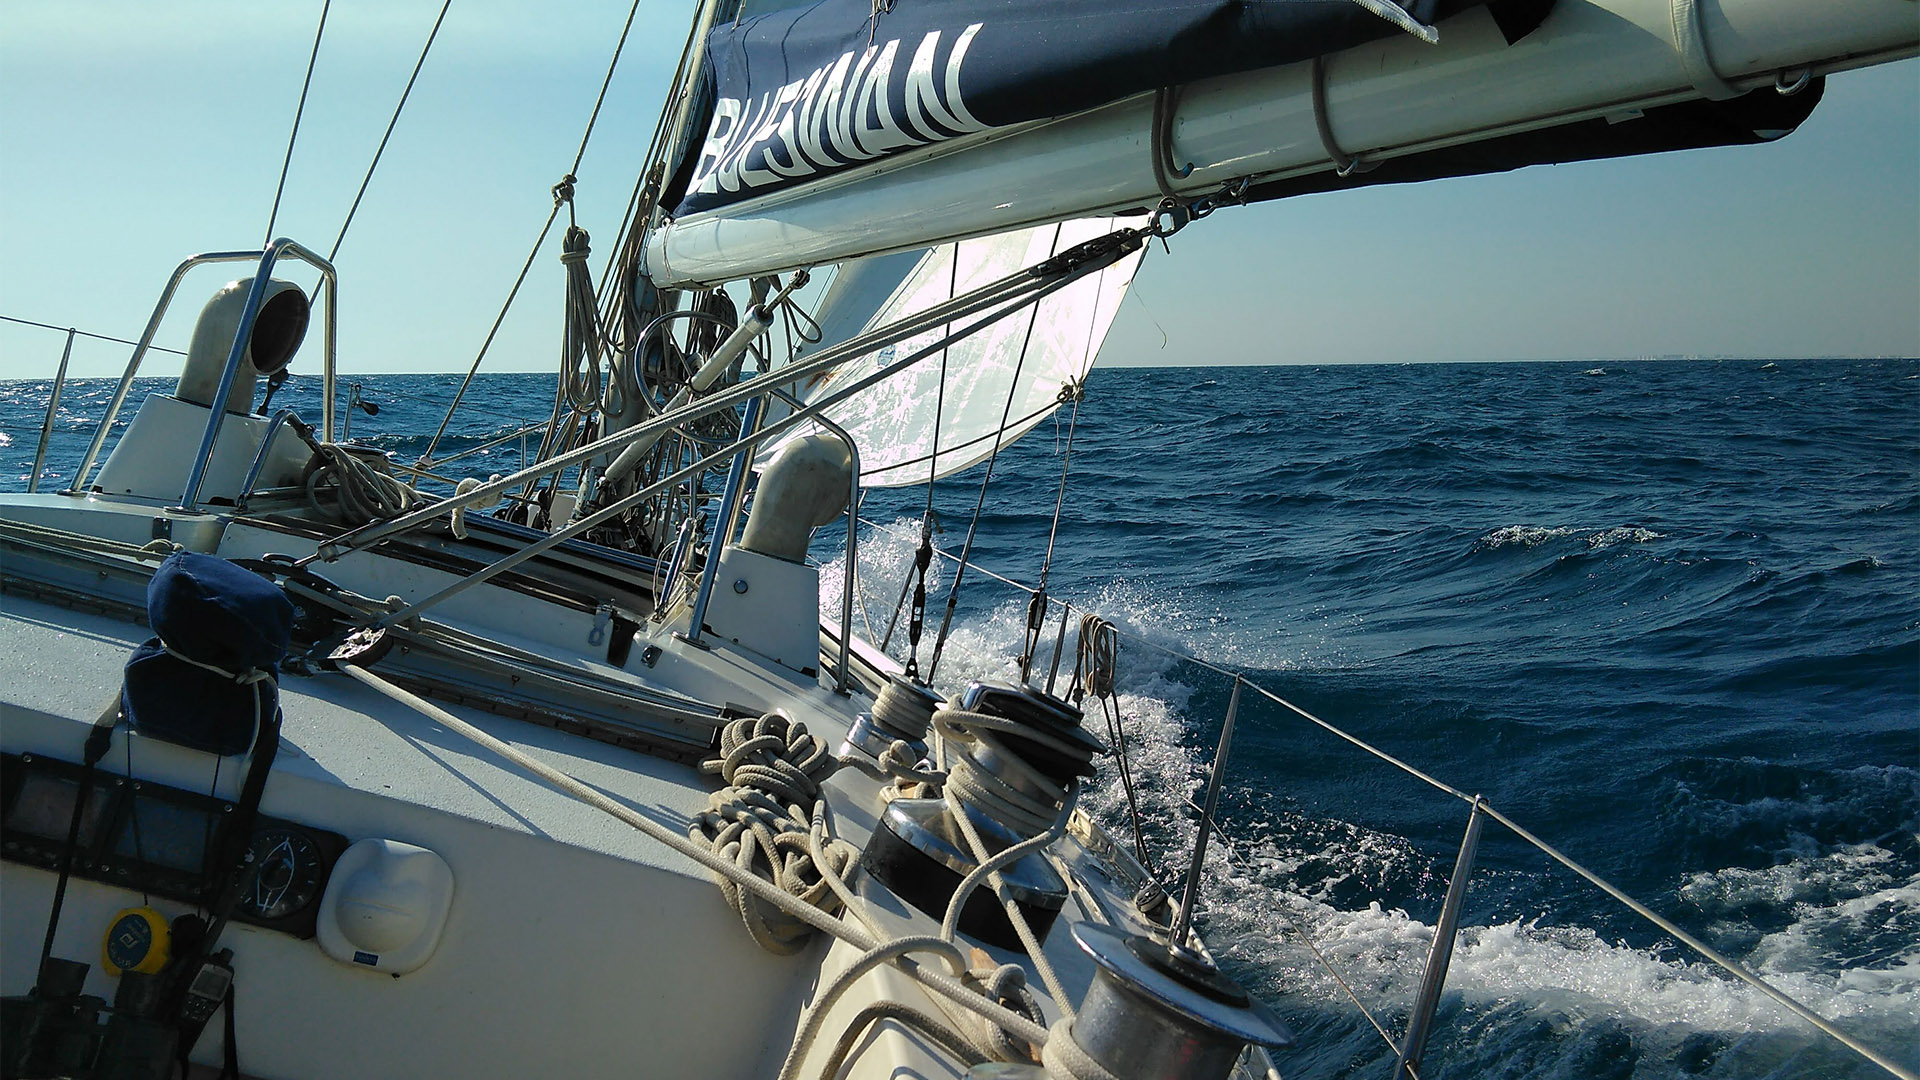 Expedition sailboat in the ocean